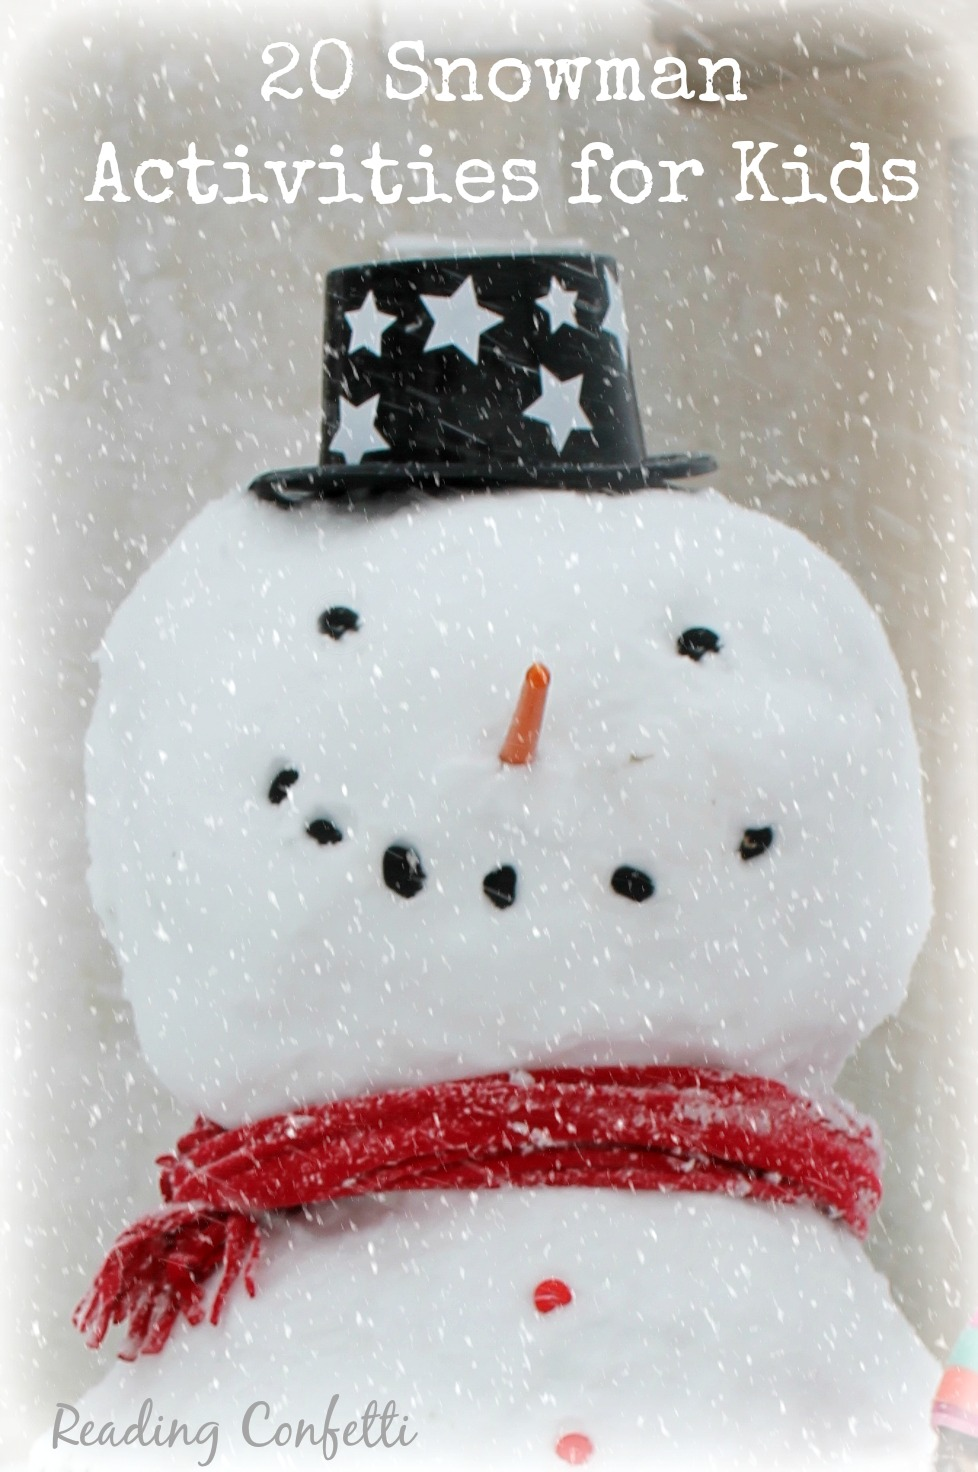 http://www.readingconfetti.com/2013/12/20-snowman-activities-kids-co-op.html